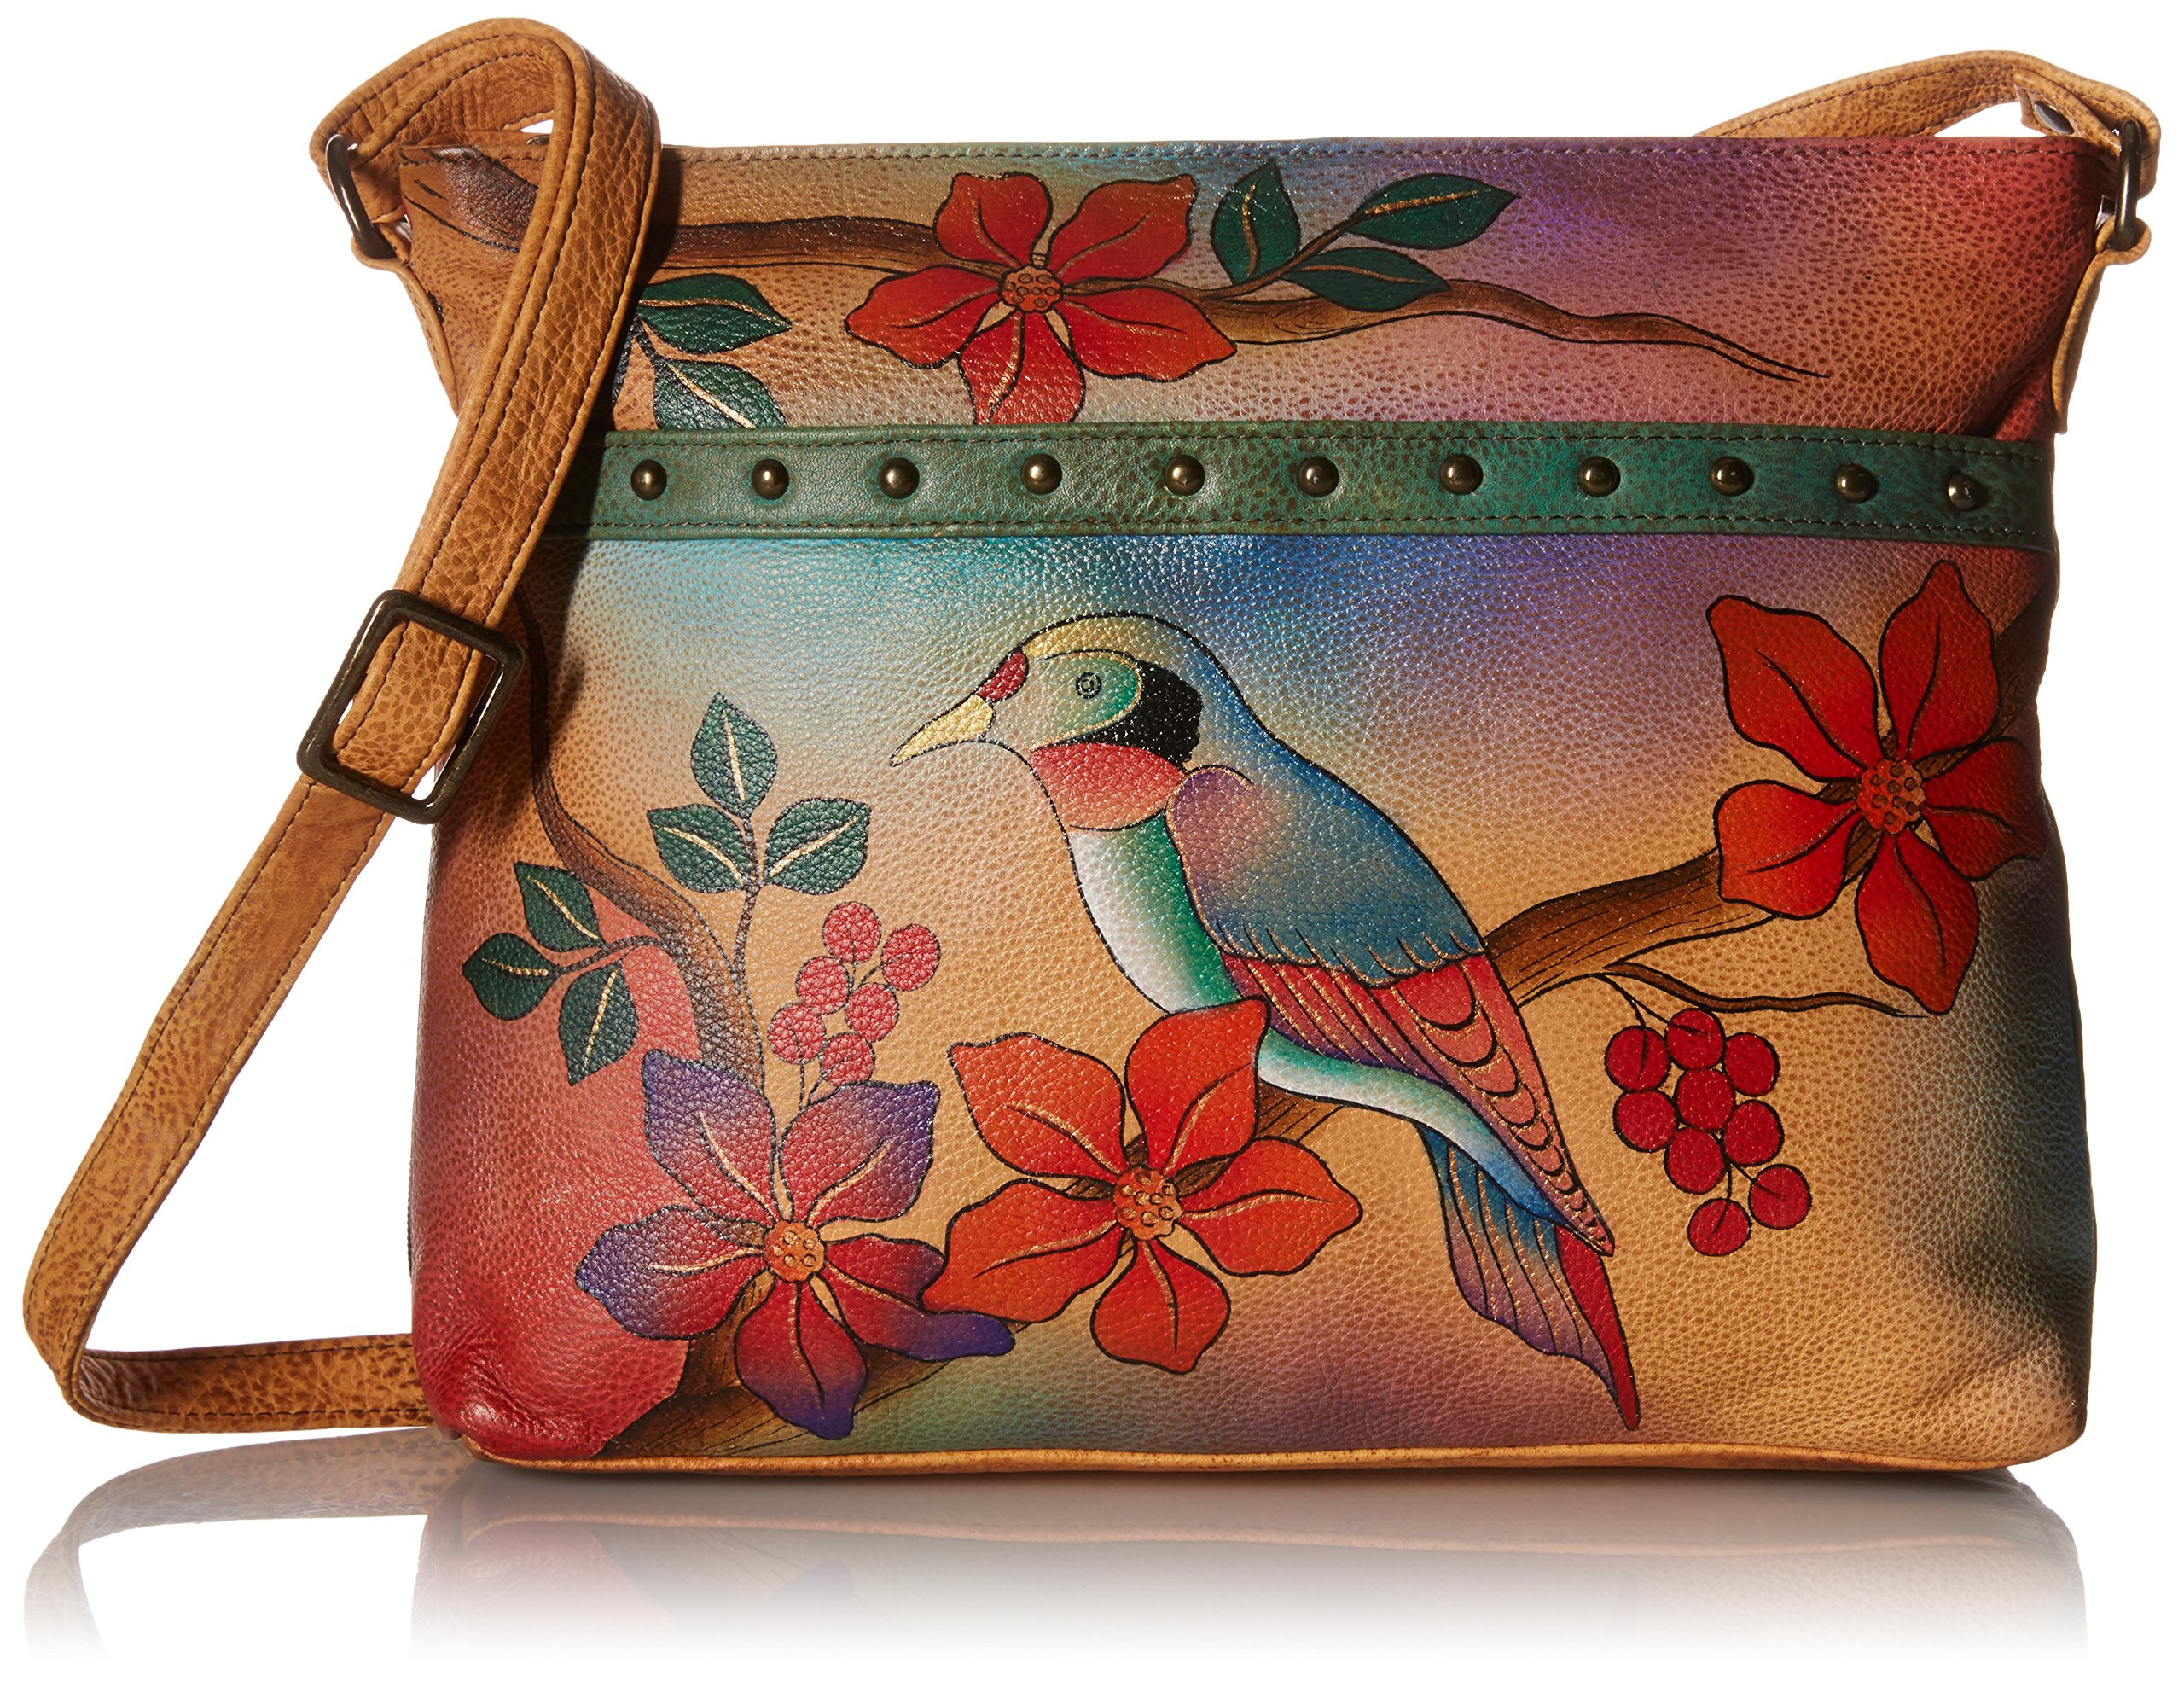 Anuschka Anna by Handpainted Leather Medium Organizer Body, Bird on Branch